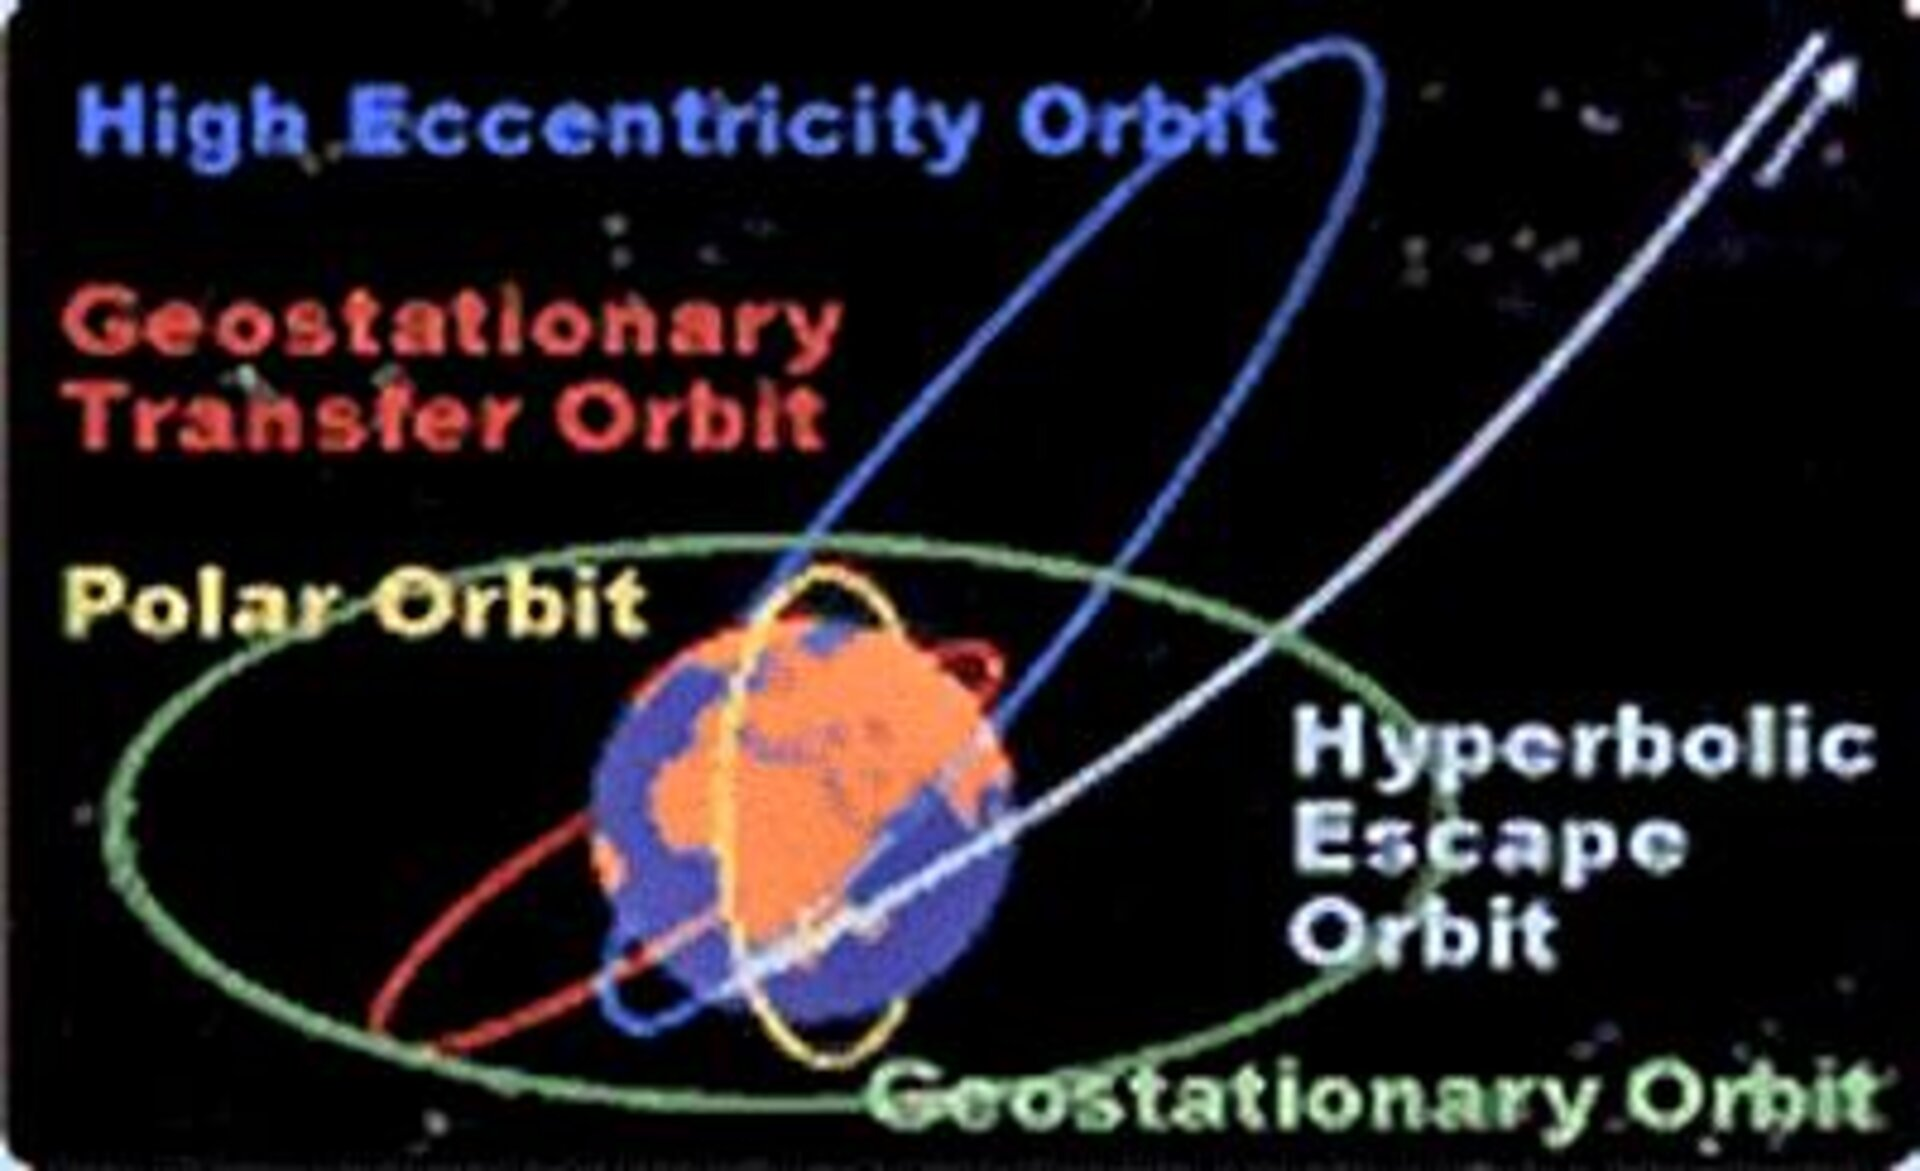 Some popular orbits